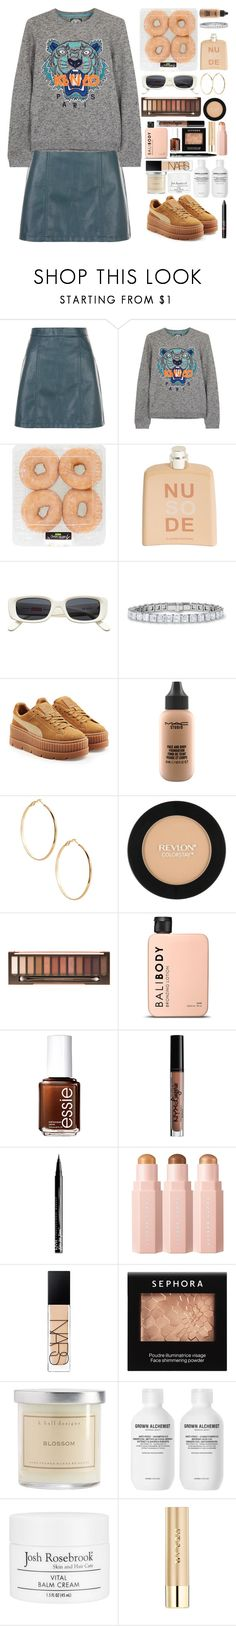 """""""Easy like Sunday morning ⭐️"""" by ludocottoncandyprincess02 ❤ liked on Polyvore featuring Kenzo, COSTUME NATIONAL, Puma, MAC Cosmetics, GUESS by Marciano, Revlon, Essie, Charlotte Russe, NYX and NARS Cosmetics"""